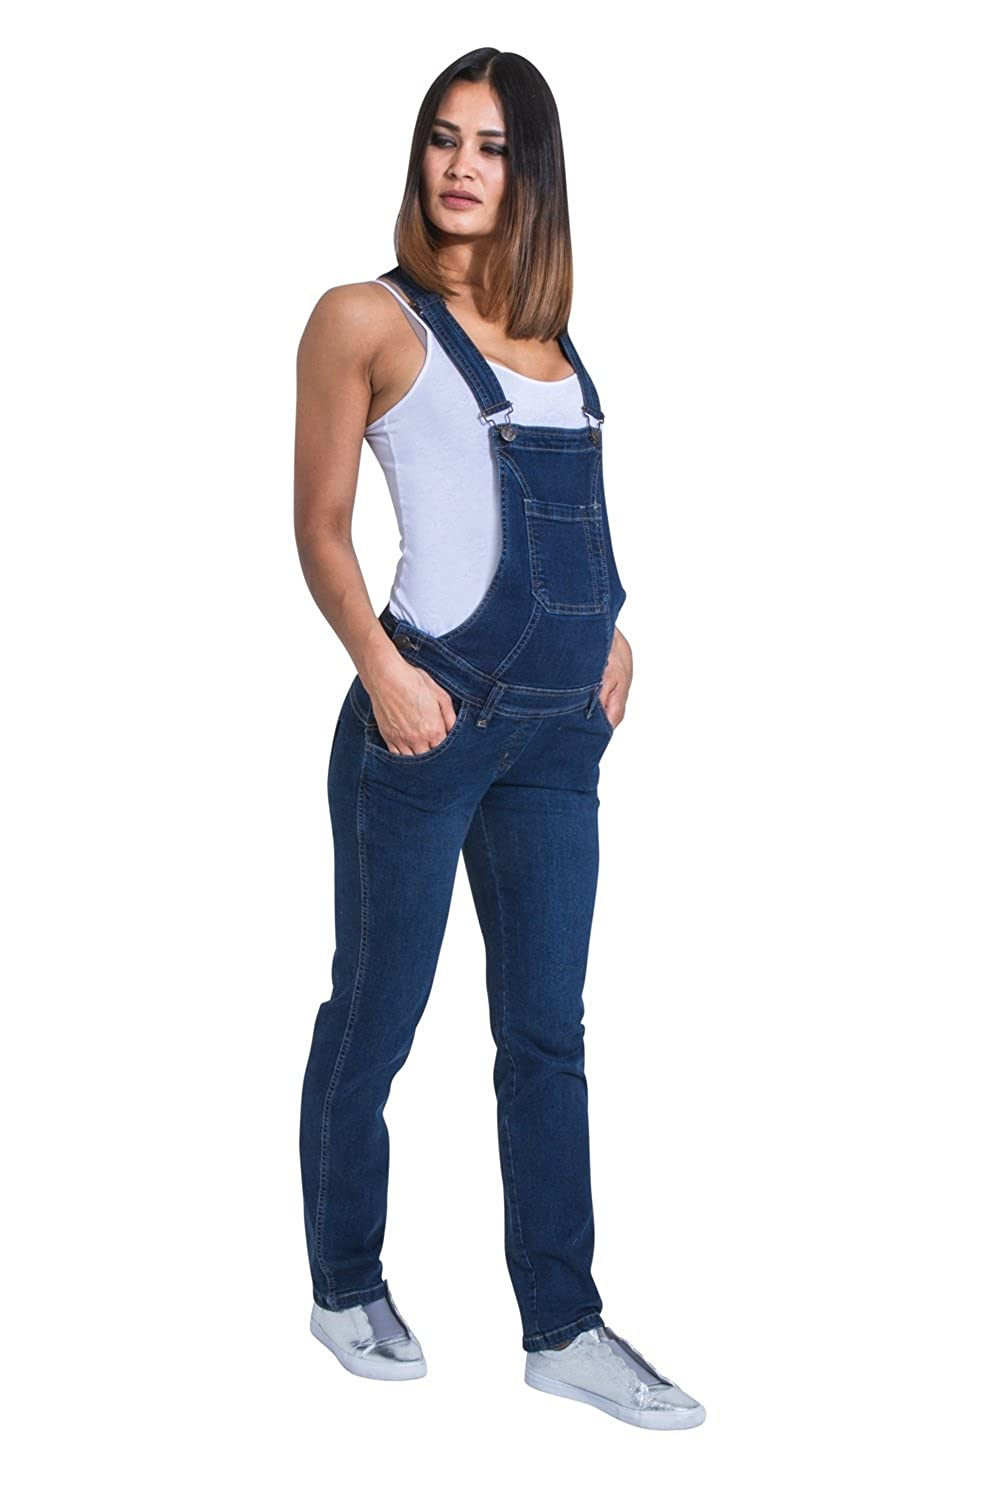 USKEES Maternity Dungarees - Darkwash Denim Blue Pregnancy Overalls Maternity Fashion Grace